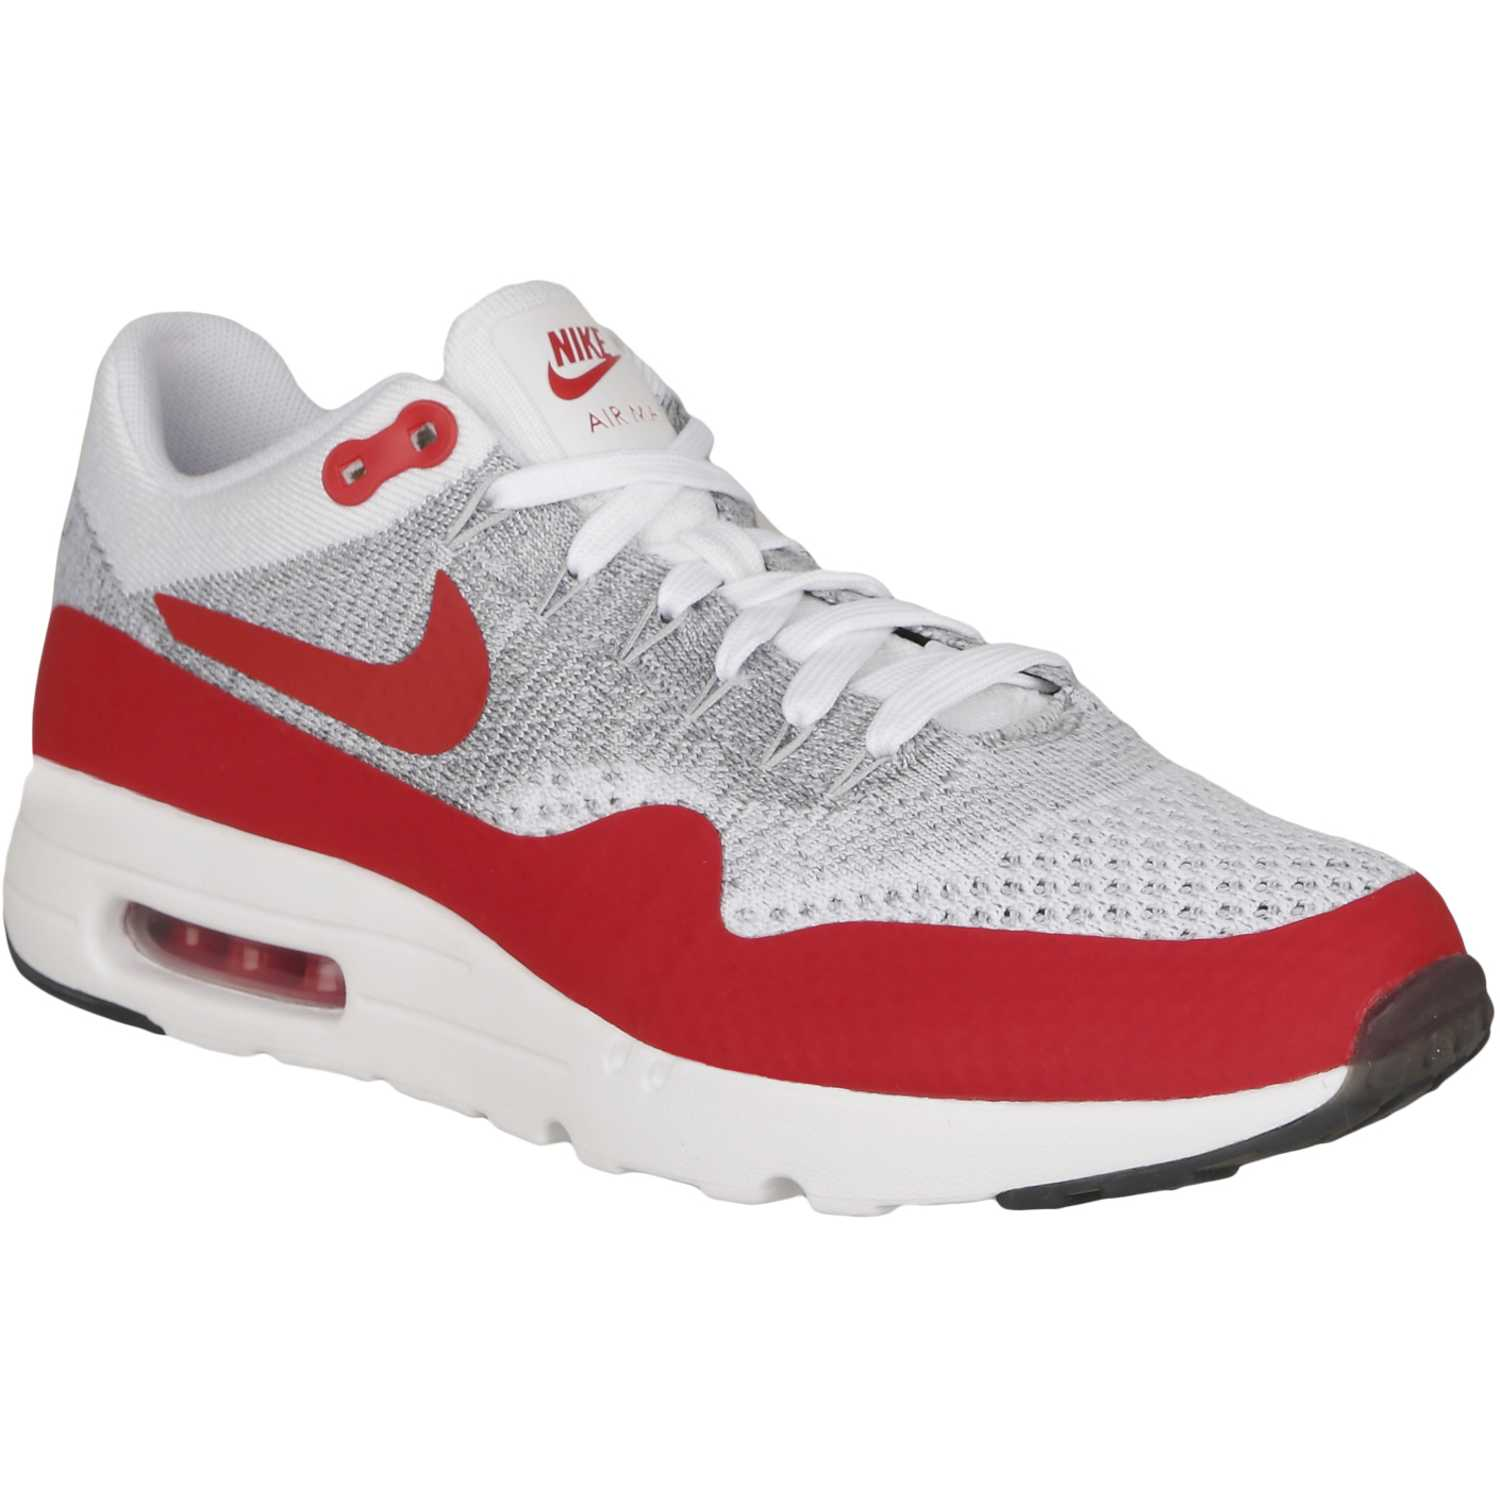 Mujeres Hombres Nike Air Max 1 Ultra Flyknit Sport Rojo